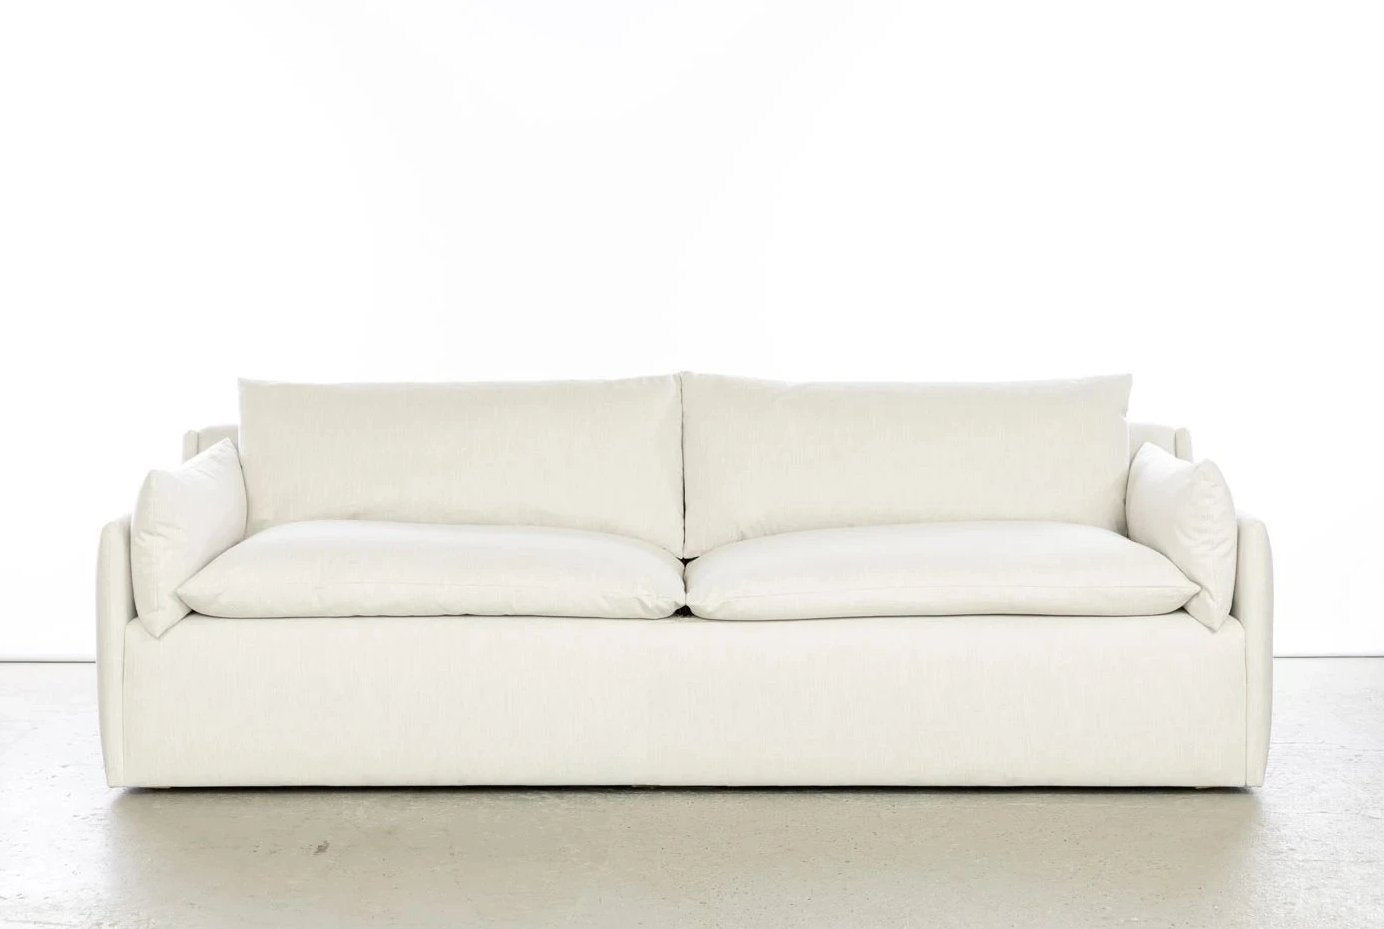 ffabb Saramony sofa in Linen look - Sand Dollar fabric